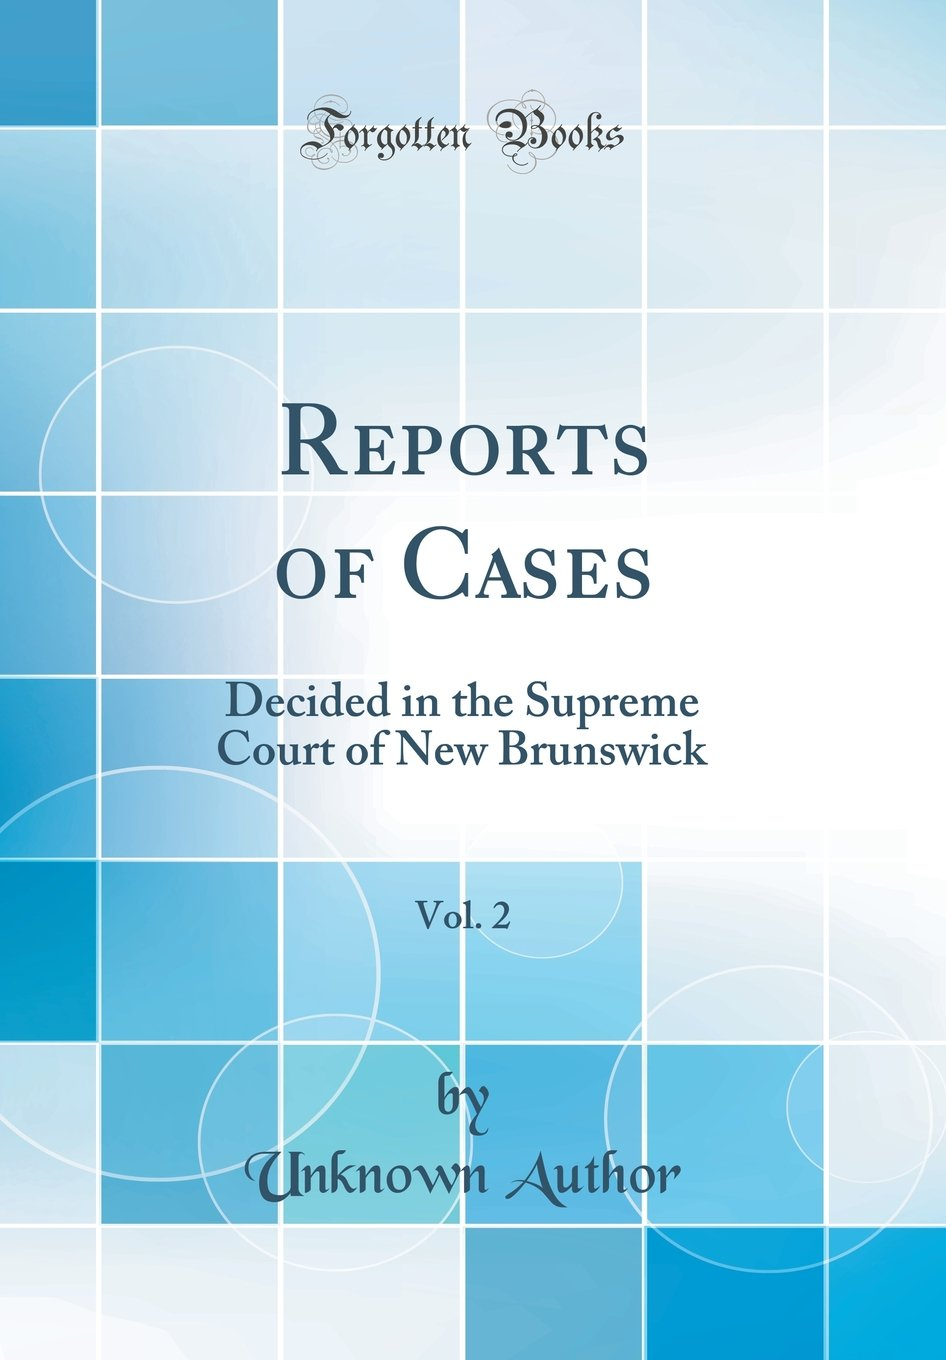 Reports of Cases, Vol. 2: Decided in the Supreme Court of New Brunswick (Classic Reprint) pdf